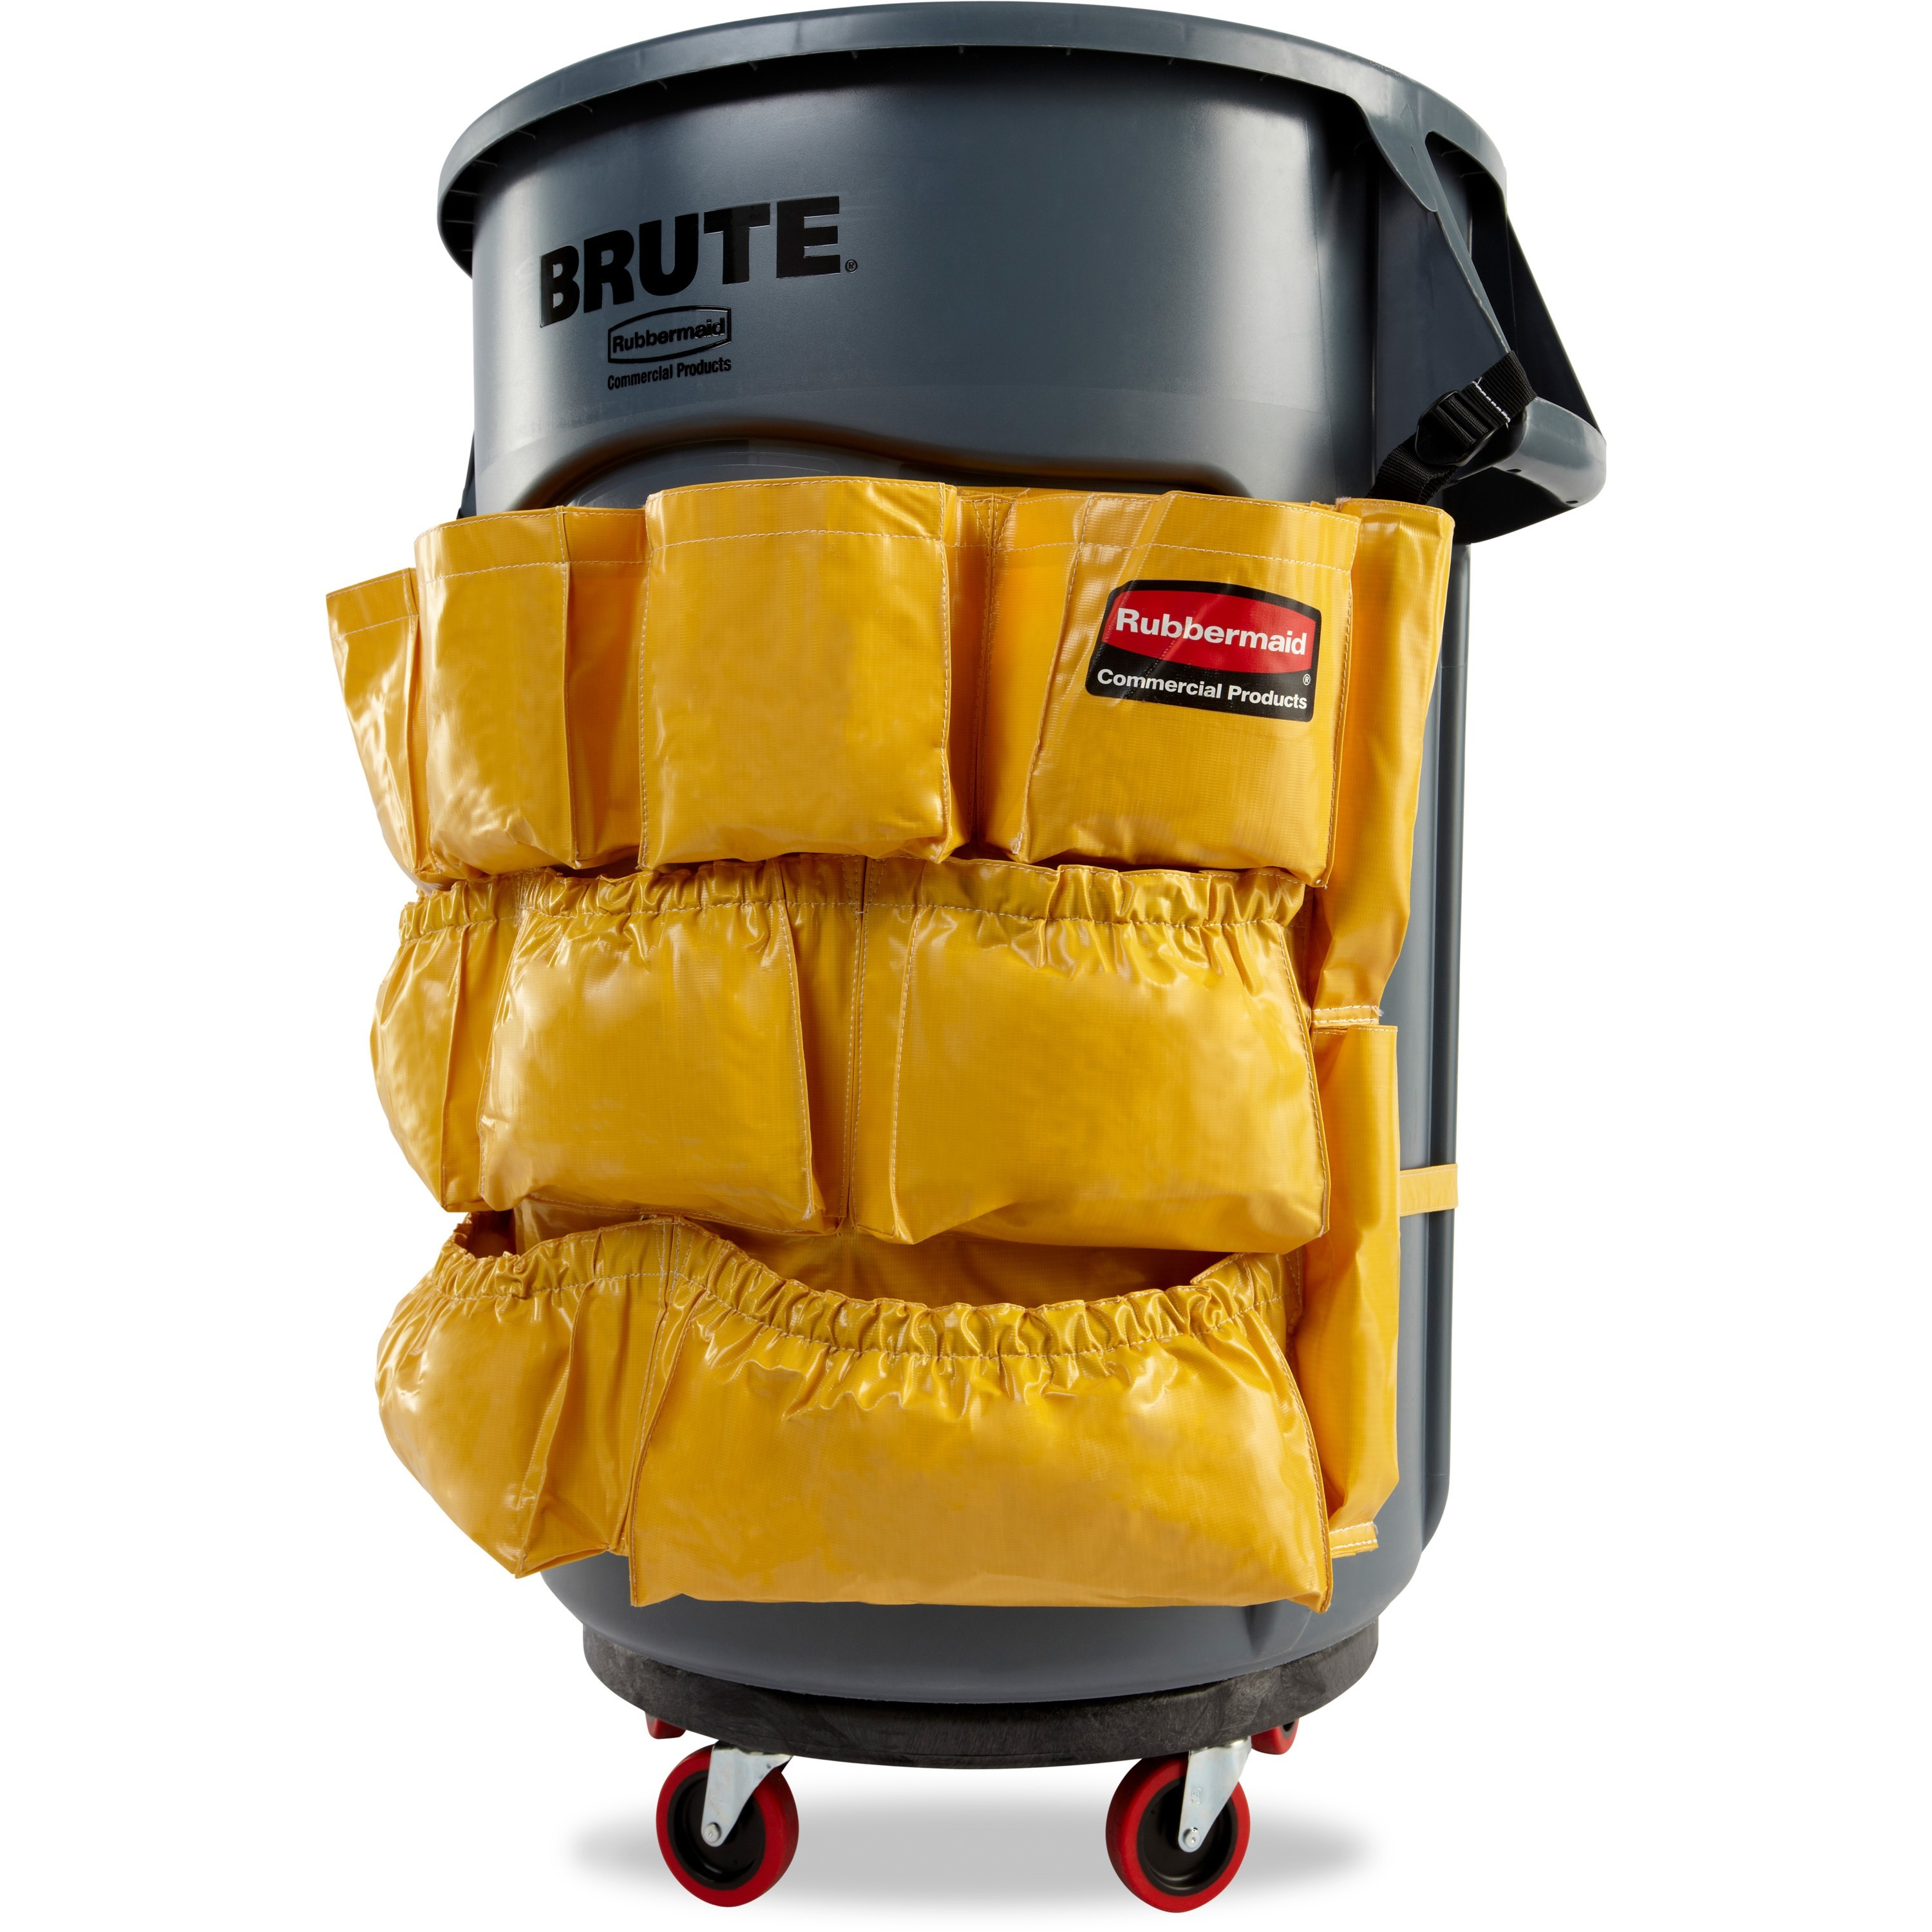 Rubbermaid Commercial Products RCP264200YW Caddy Bag Attaches to Brute Conta...